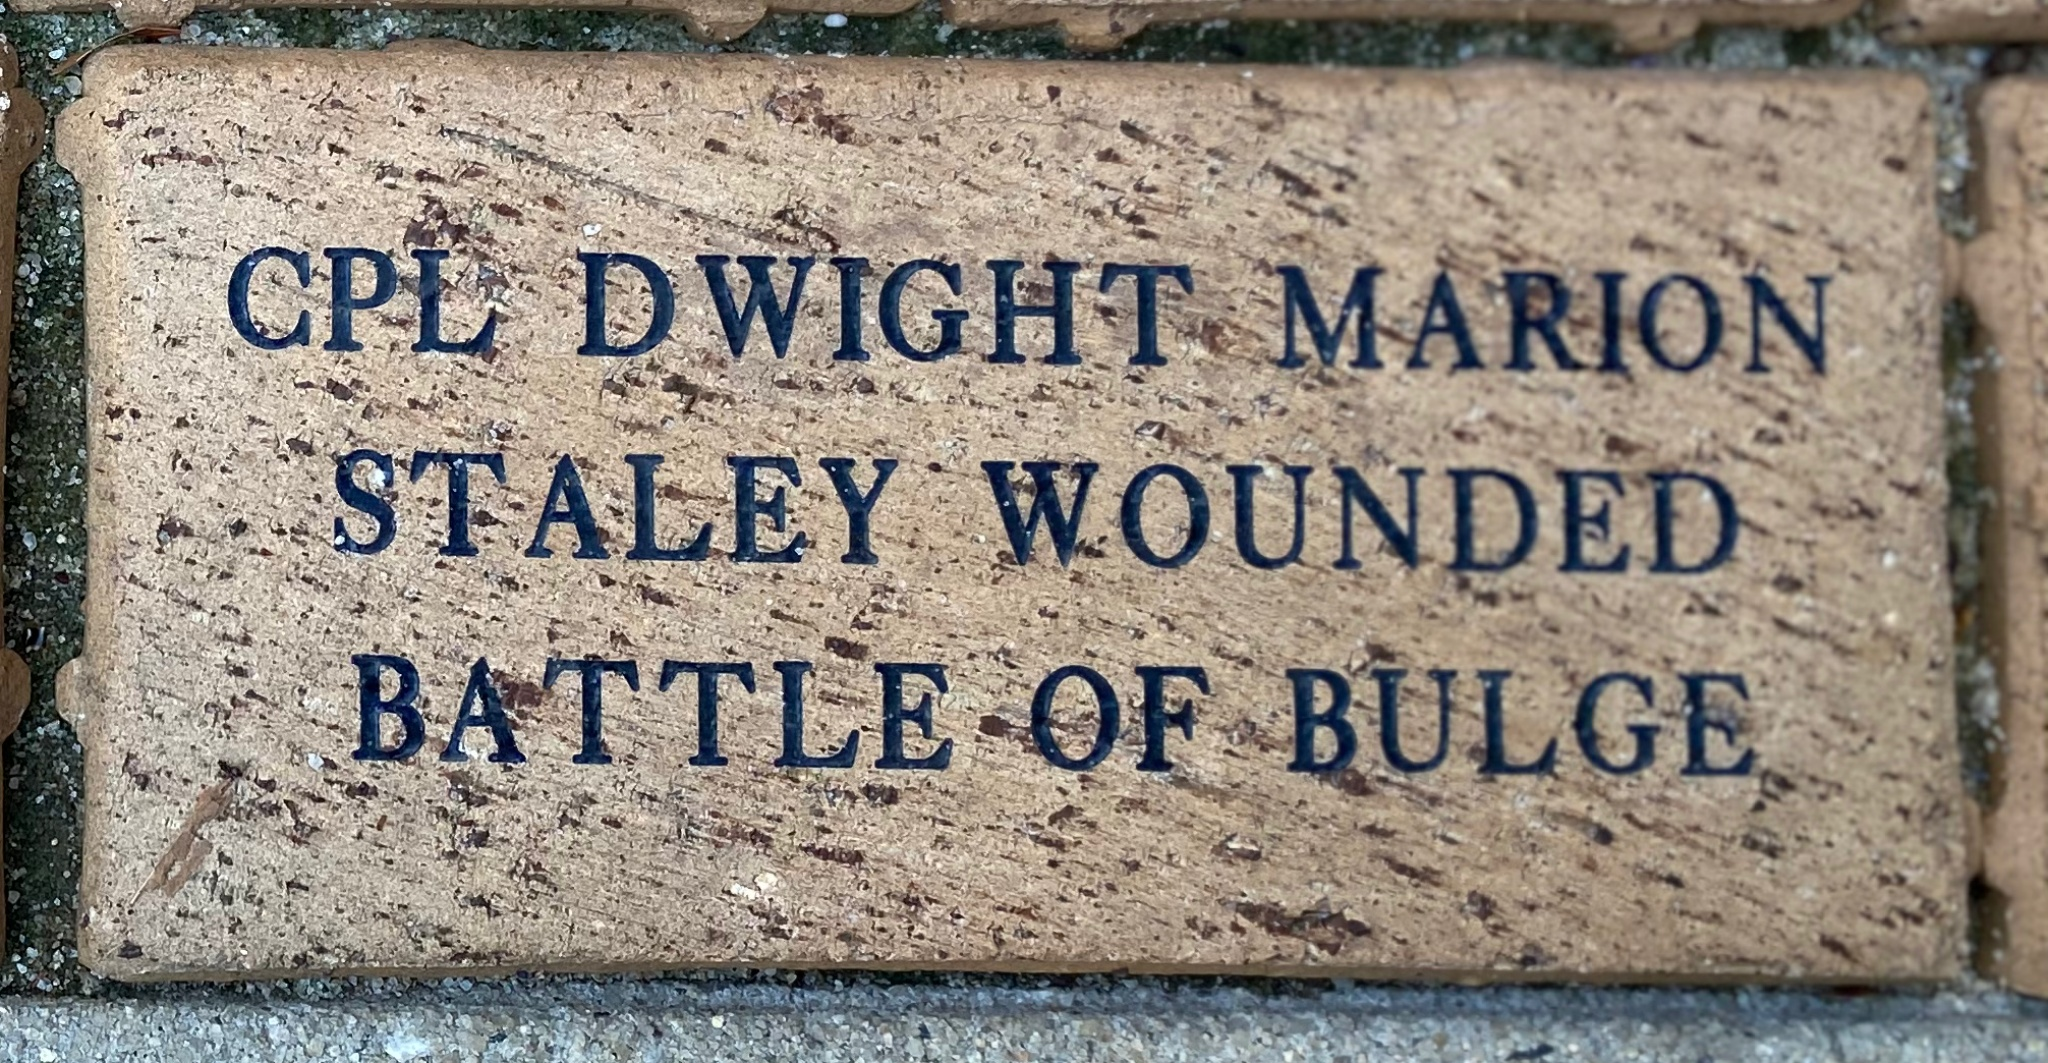 CPL DWIGHT MARION  STALEY WOUNDED BATTLE OF BULGE